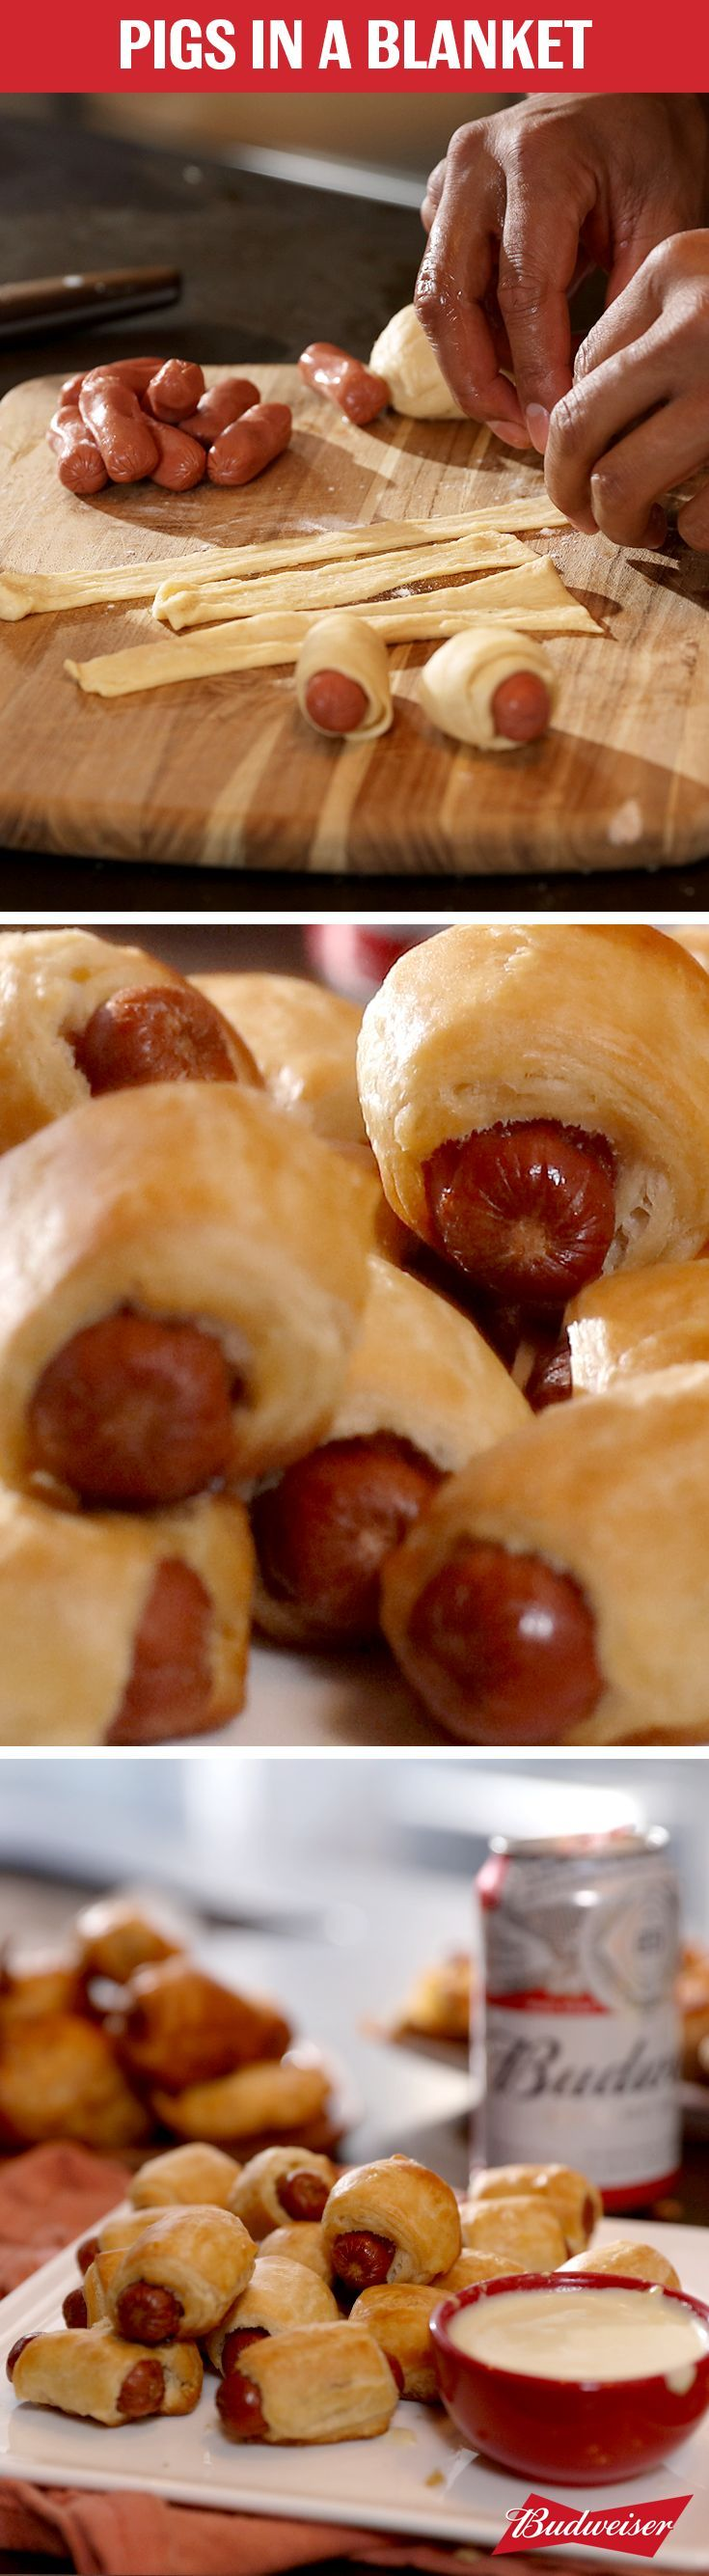 Appetizers are where it's at during March Madness. Don't miss out on our bite-sized Pigs-in-a-Blanket. Wrap mini hot dogs in crescent rolls and bake. Dip them in a creamy dijon mustard sauce. Then wash them down with an ice cold Budweiser                                                                                                                                                      More